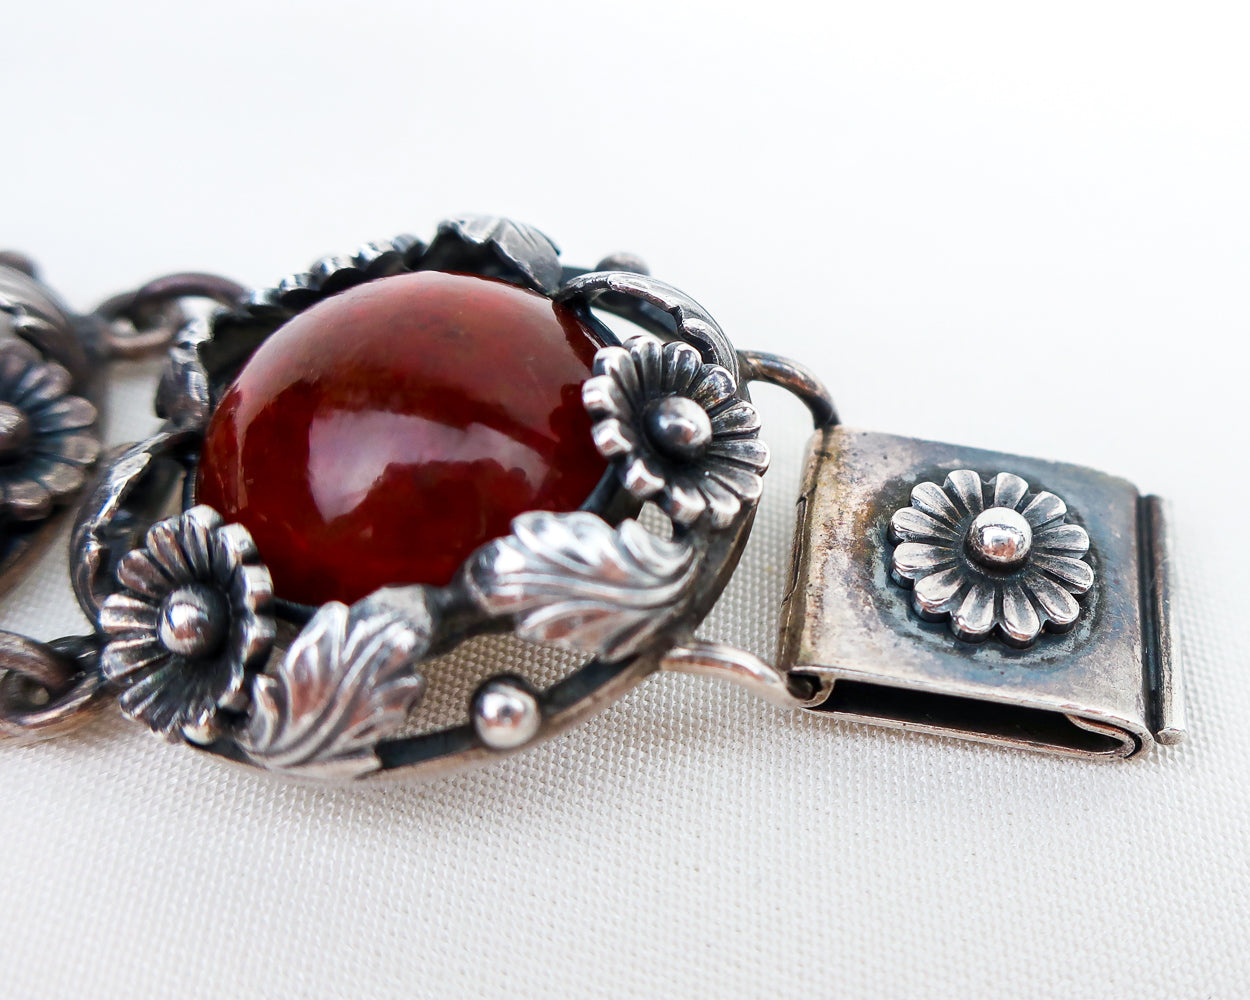 Late-Midcentury Amber & Silver Bracelet by Niels From